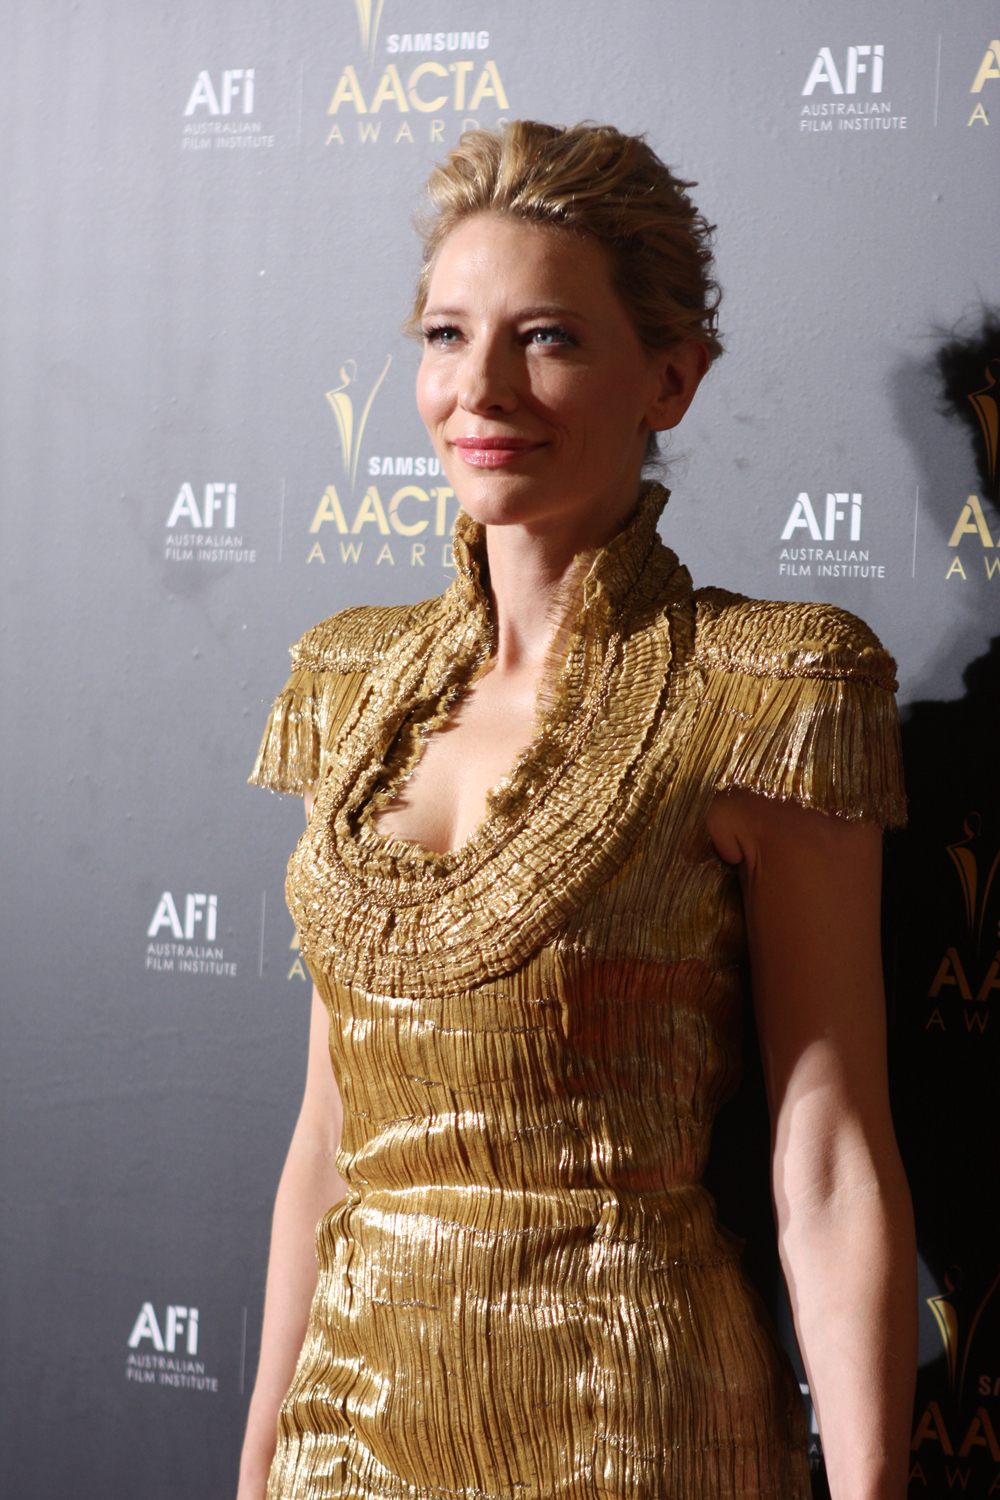 Gallery For > Cate Blanchett 2012 Cate Blanchett Wikipedia